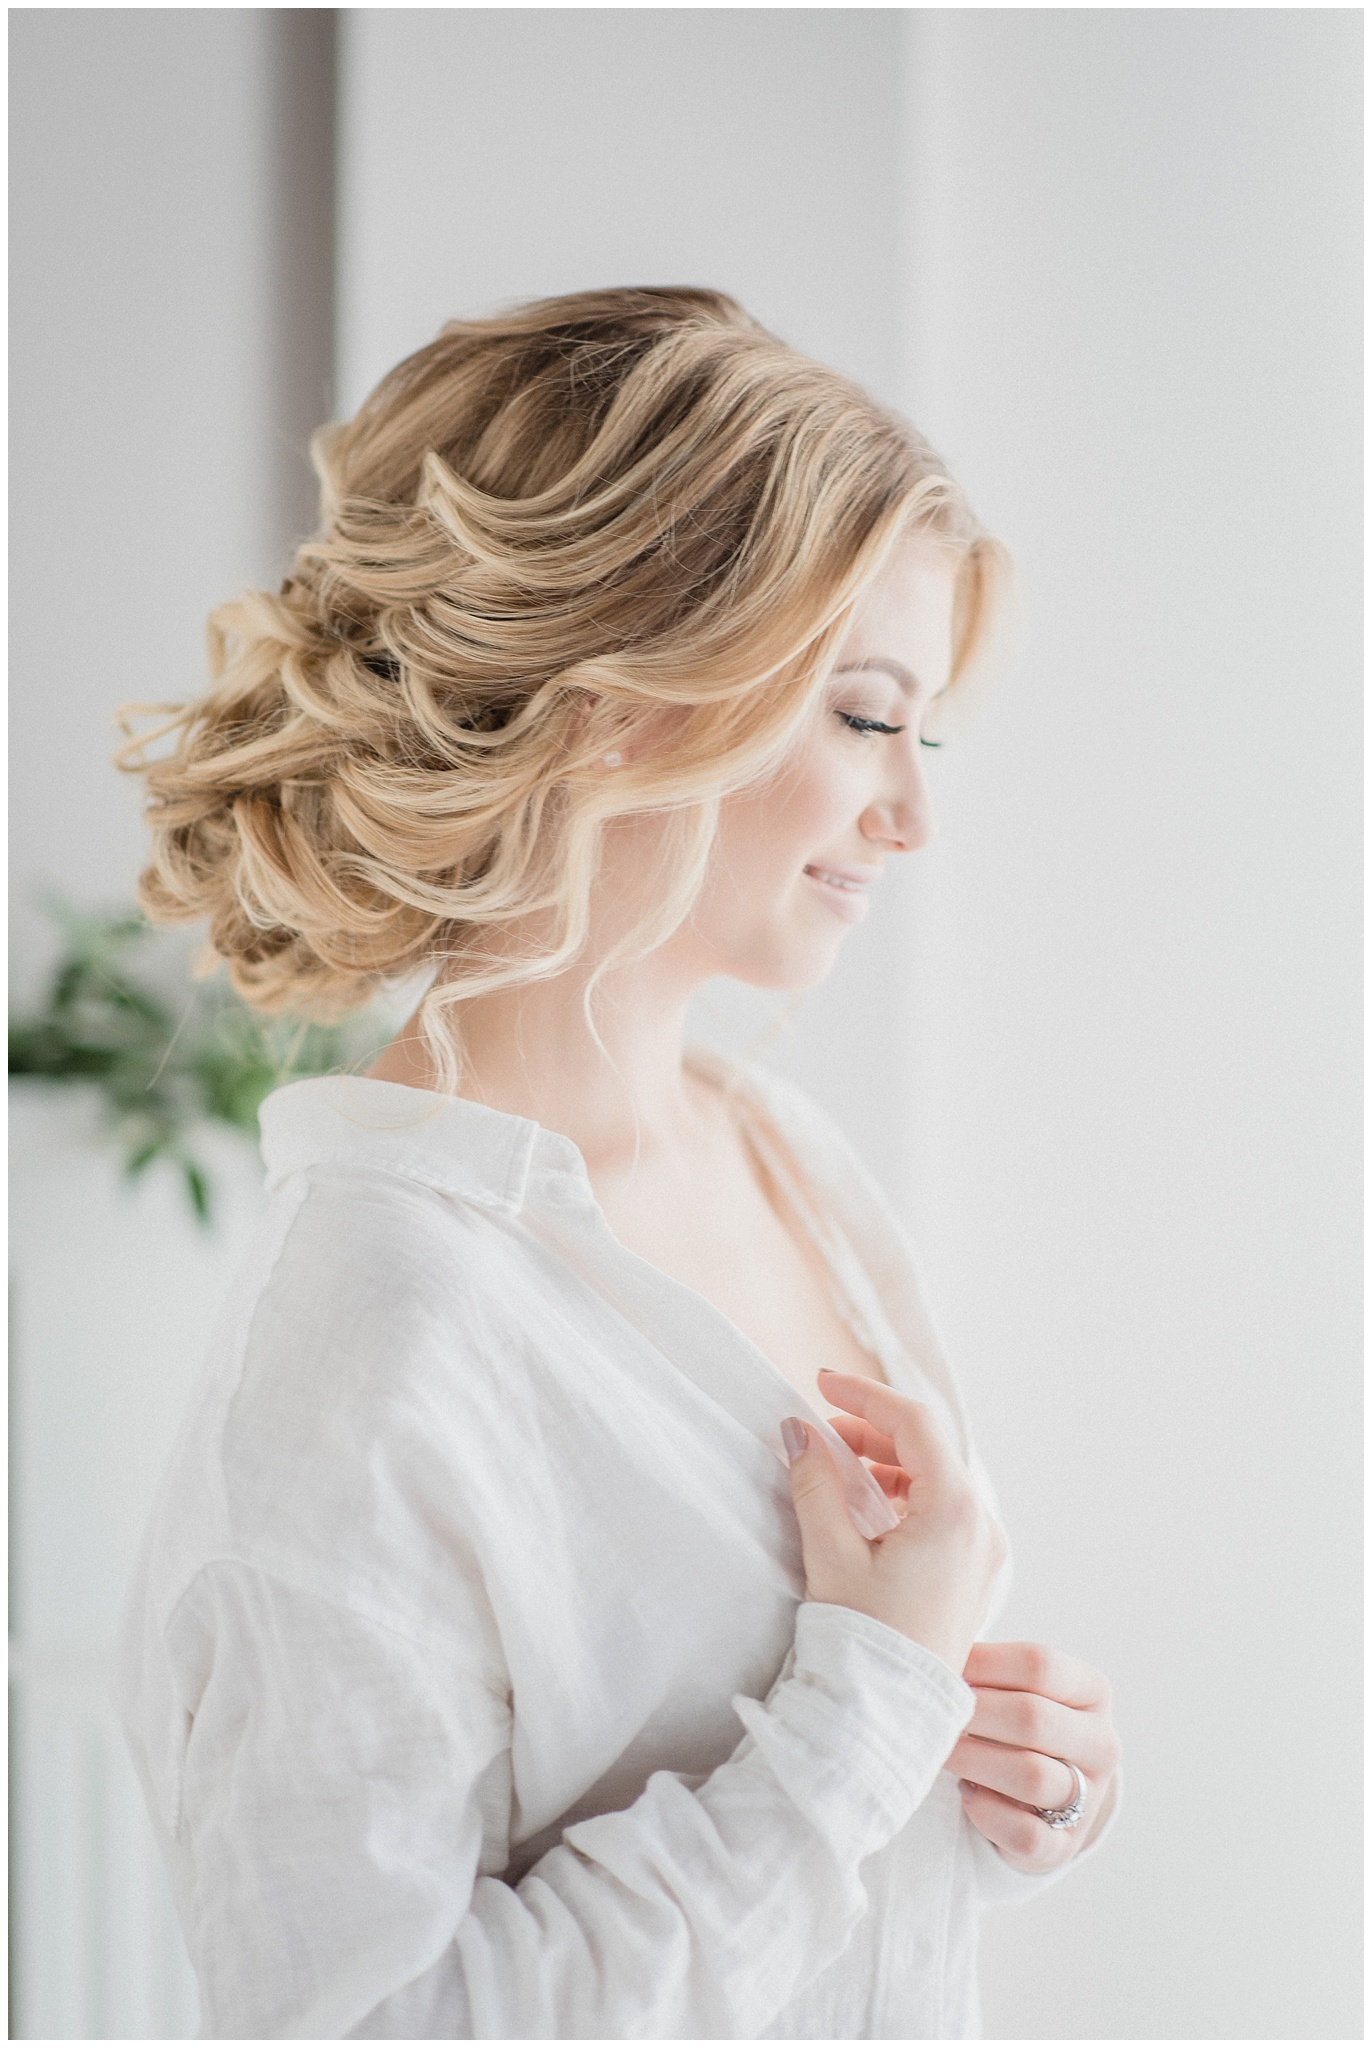 9 Expert Tips for Perfect Wedding Day Hair - Jenn Kavanagh